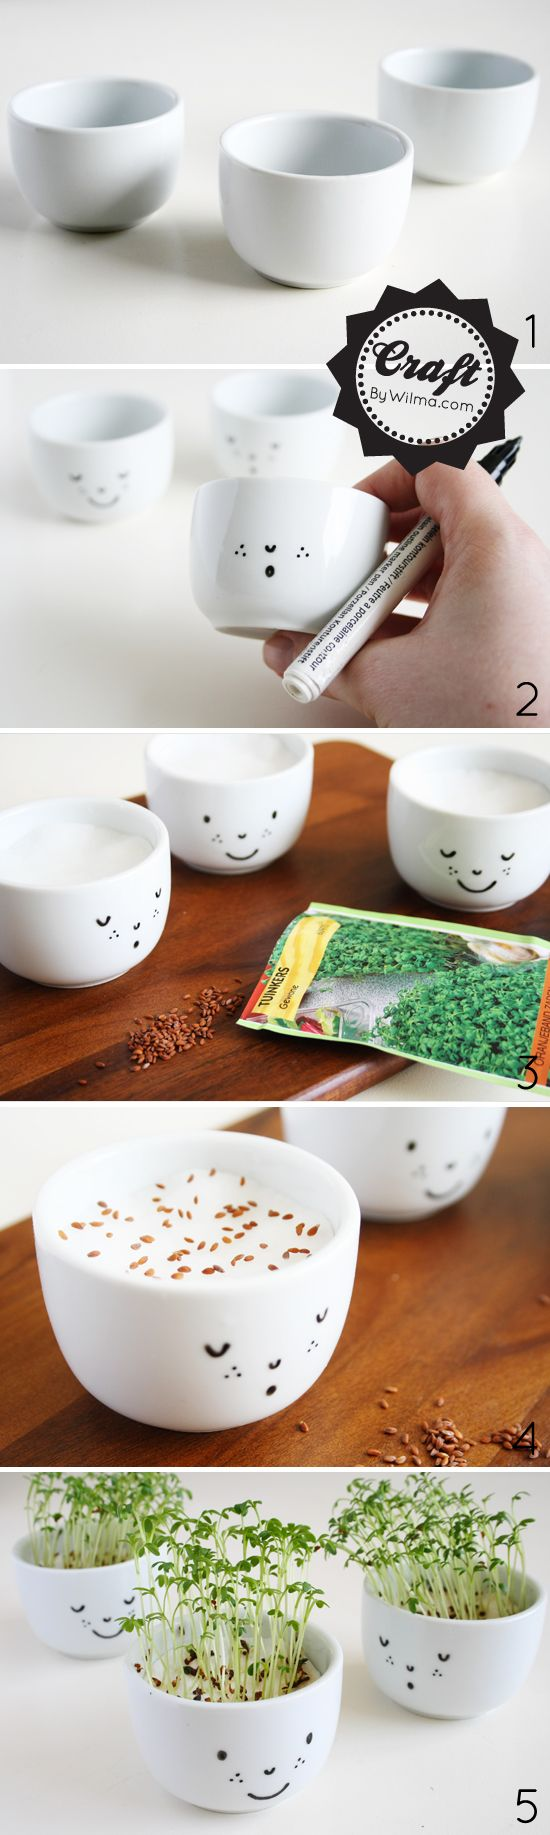 DIY - Cute cress cups with a face! :: pintar caras en los tazones, fácil!